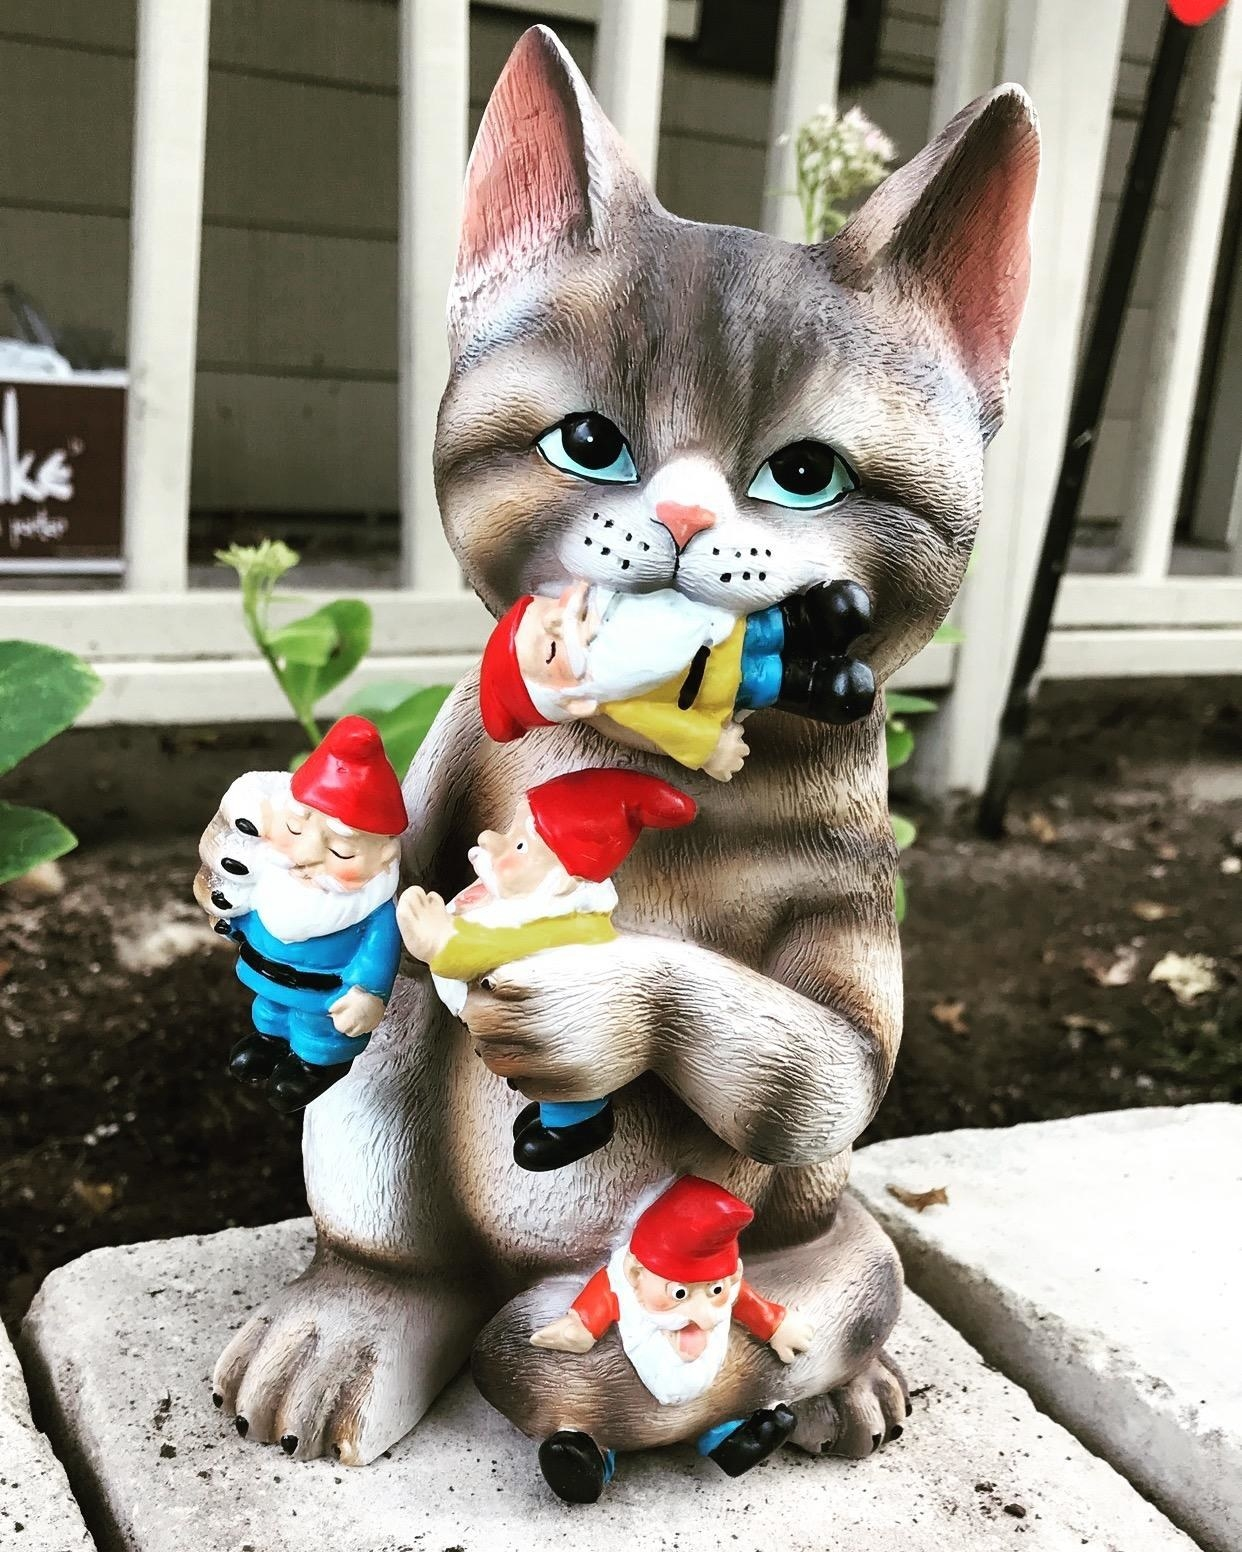 statue of tabby cat grabbing and eating small gnomes